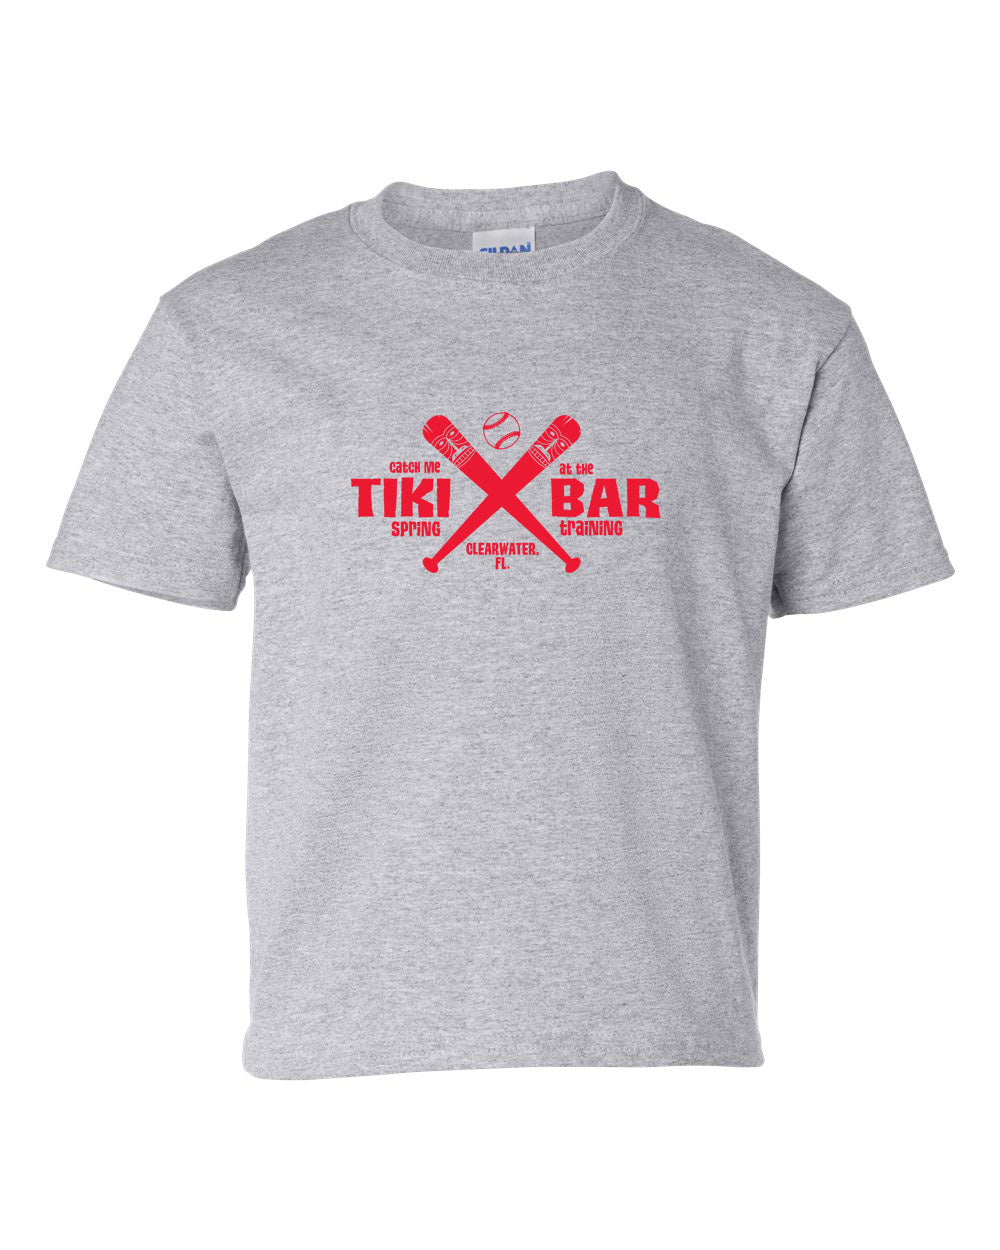 Tiki Bar KIDS T-Shirt